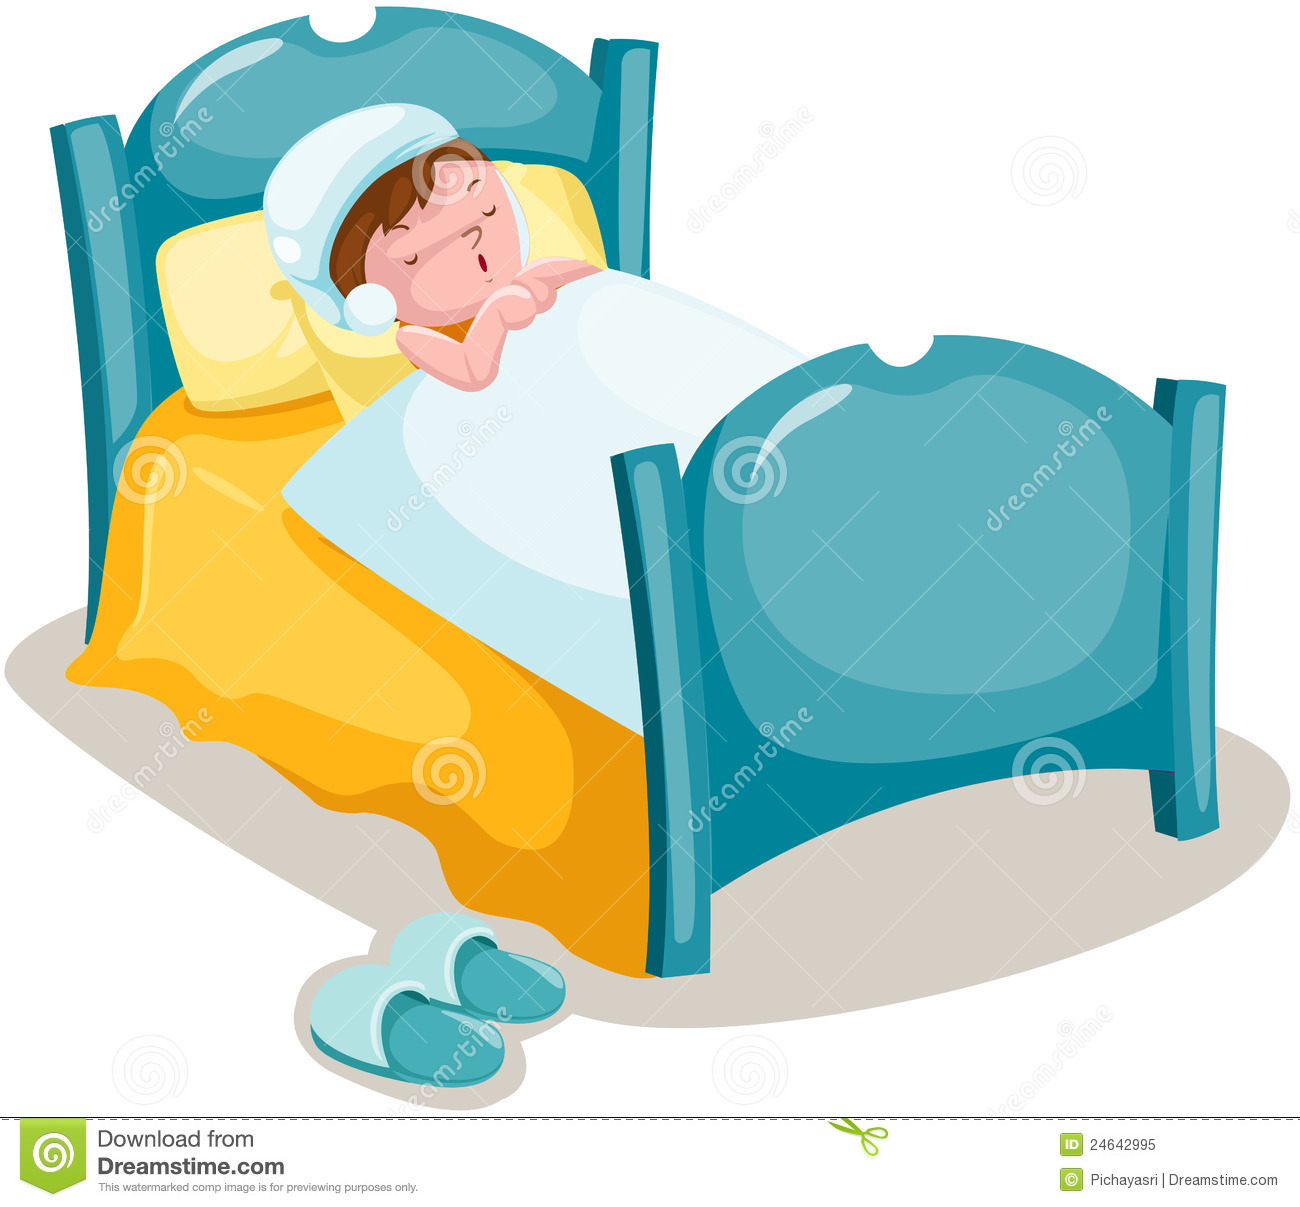 Sleeping In Bed Clipart Free Download Best Sleeping In Bed Clipart